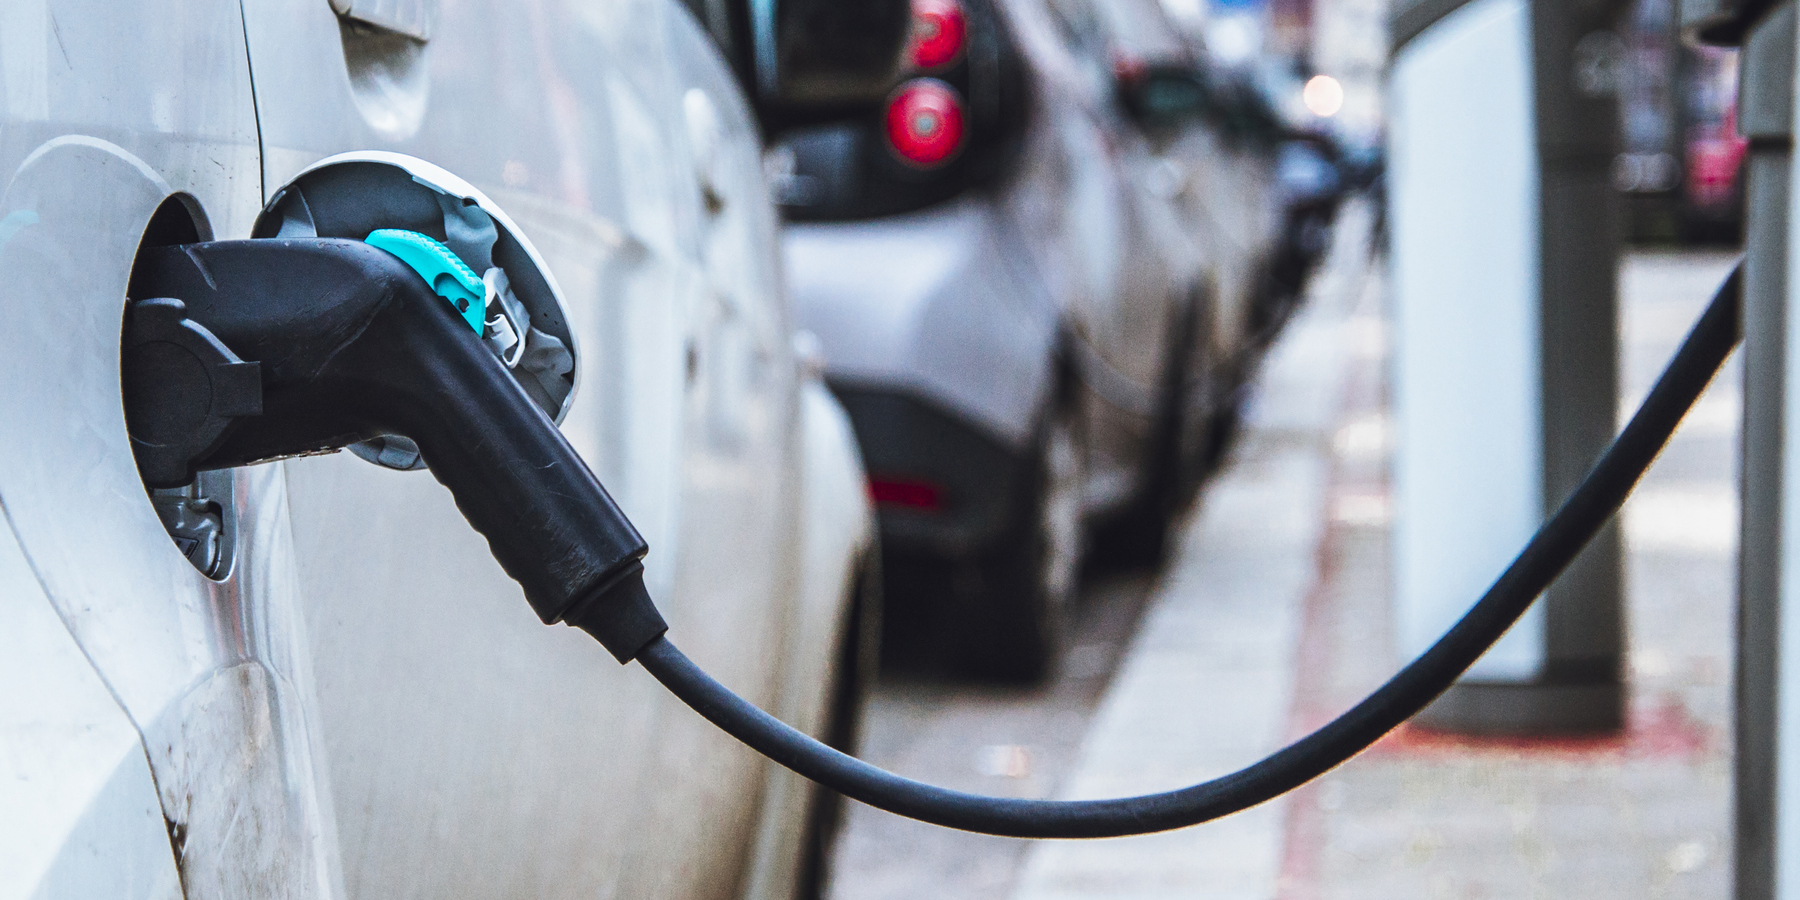 New Composite Material Revs Up Pursuit of Advanced Electric Vehicles